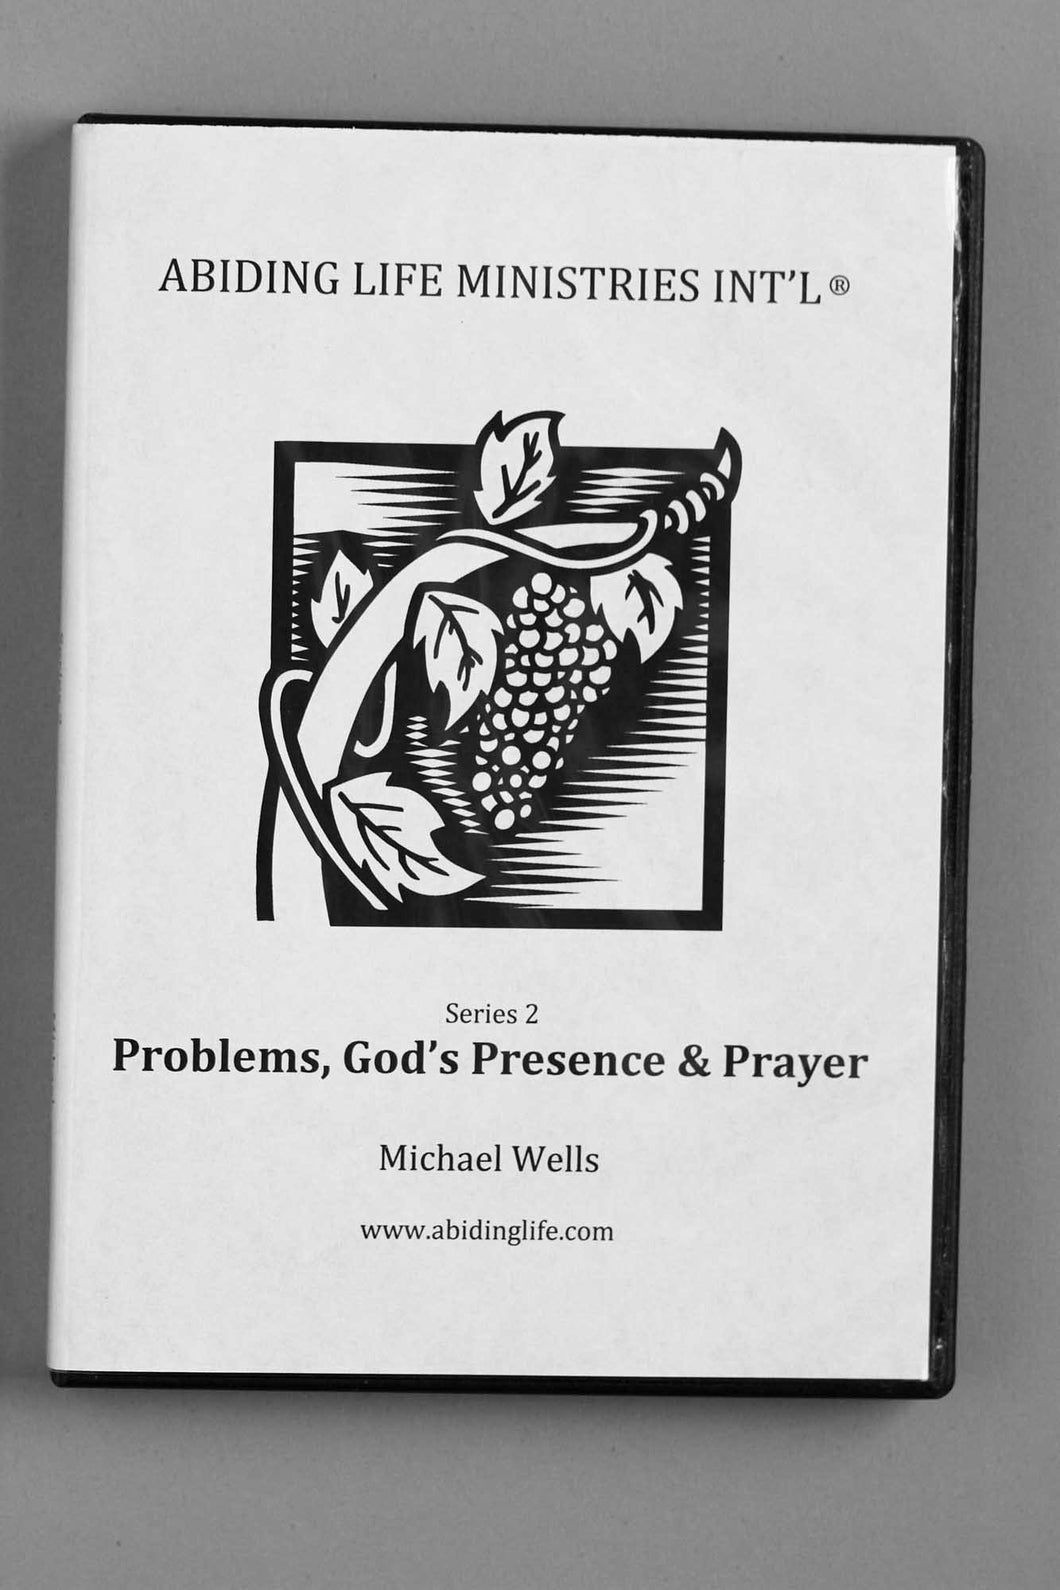 Problems, God's Presence, & Prayer CD